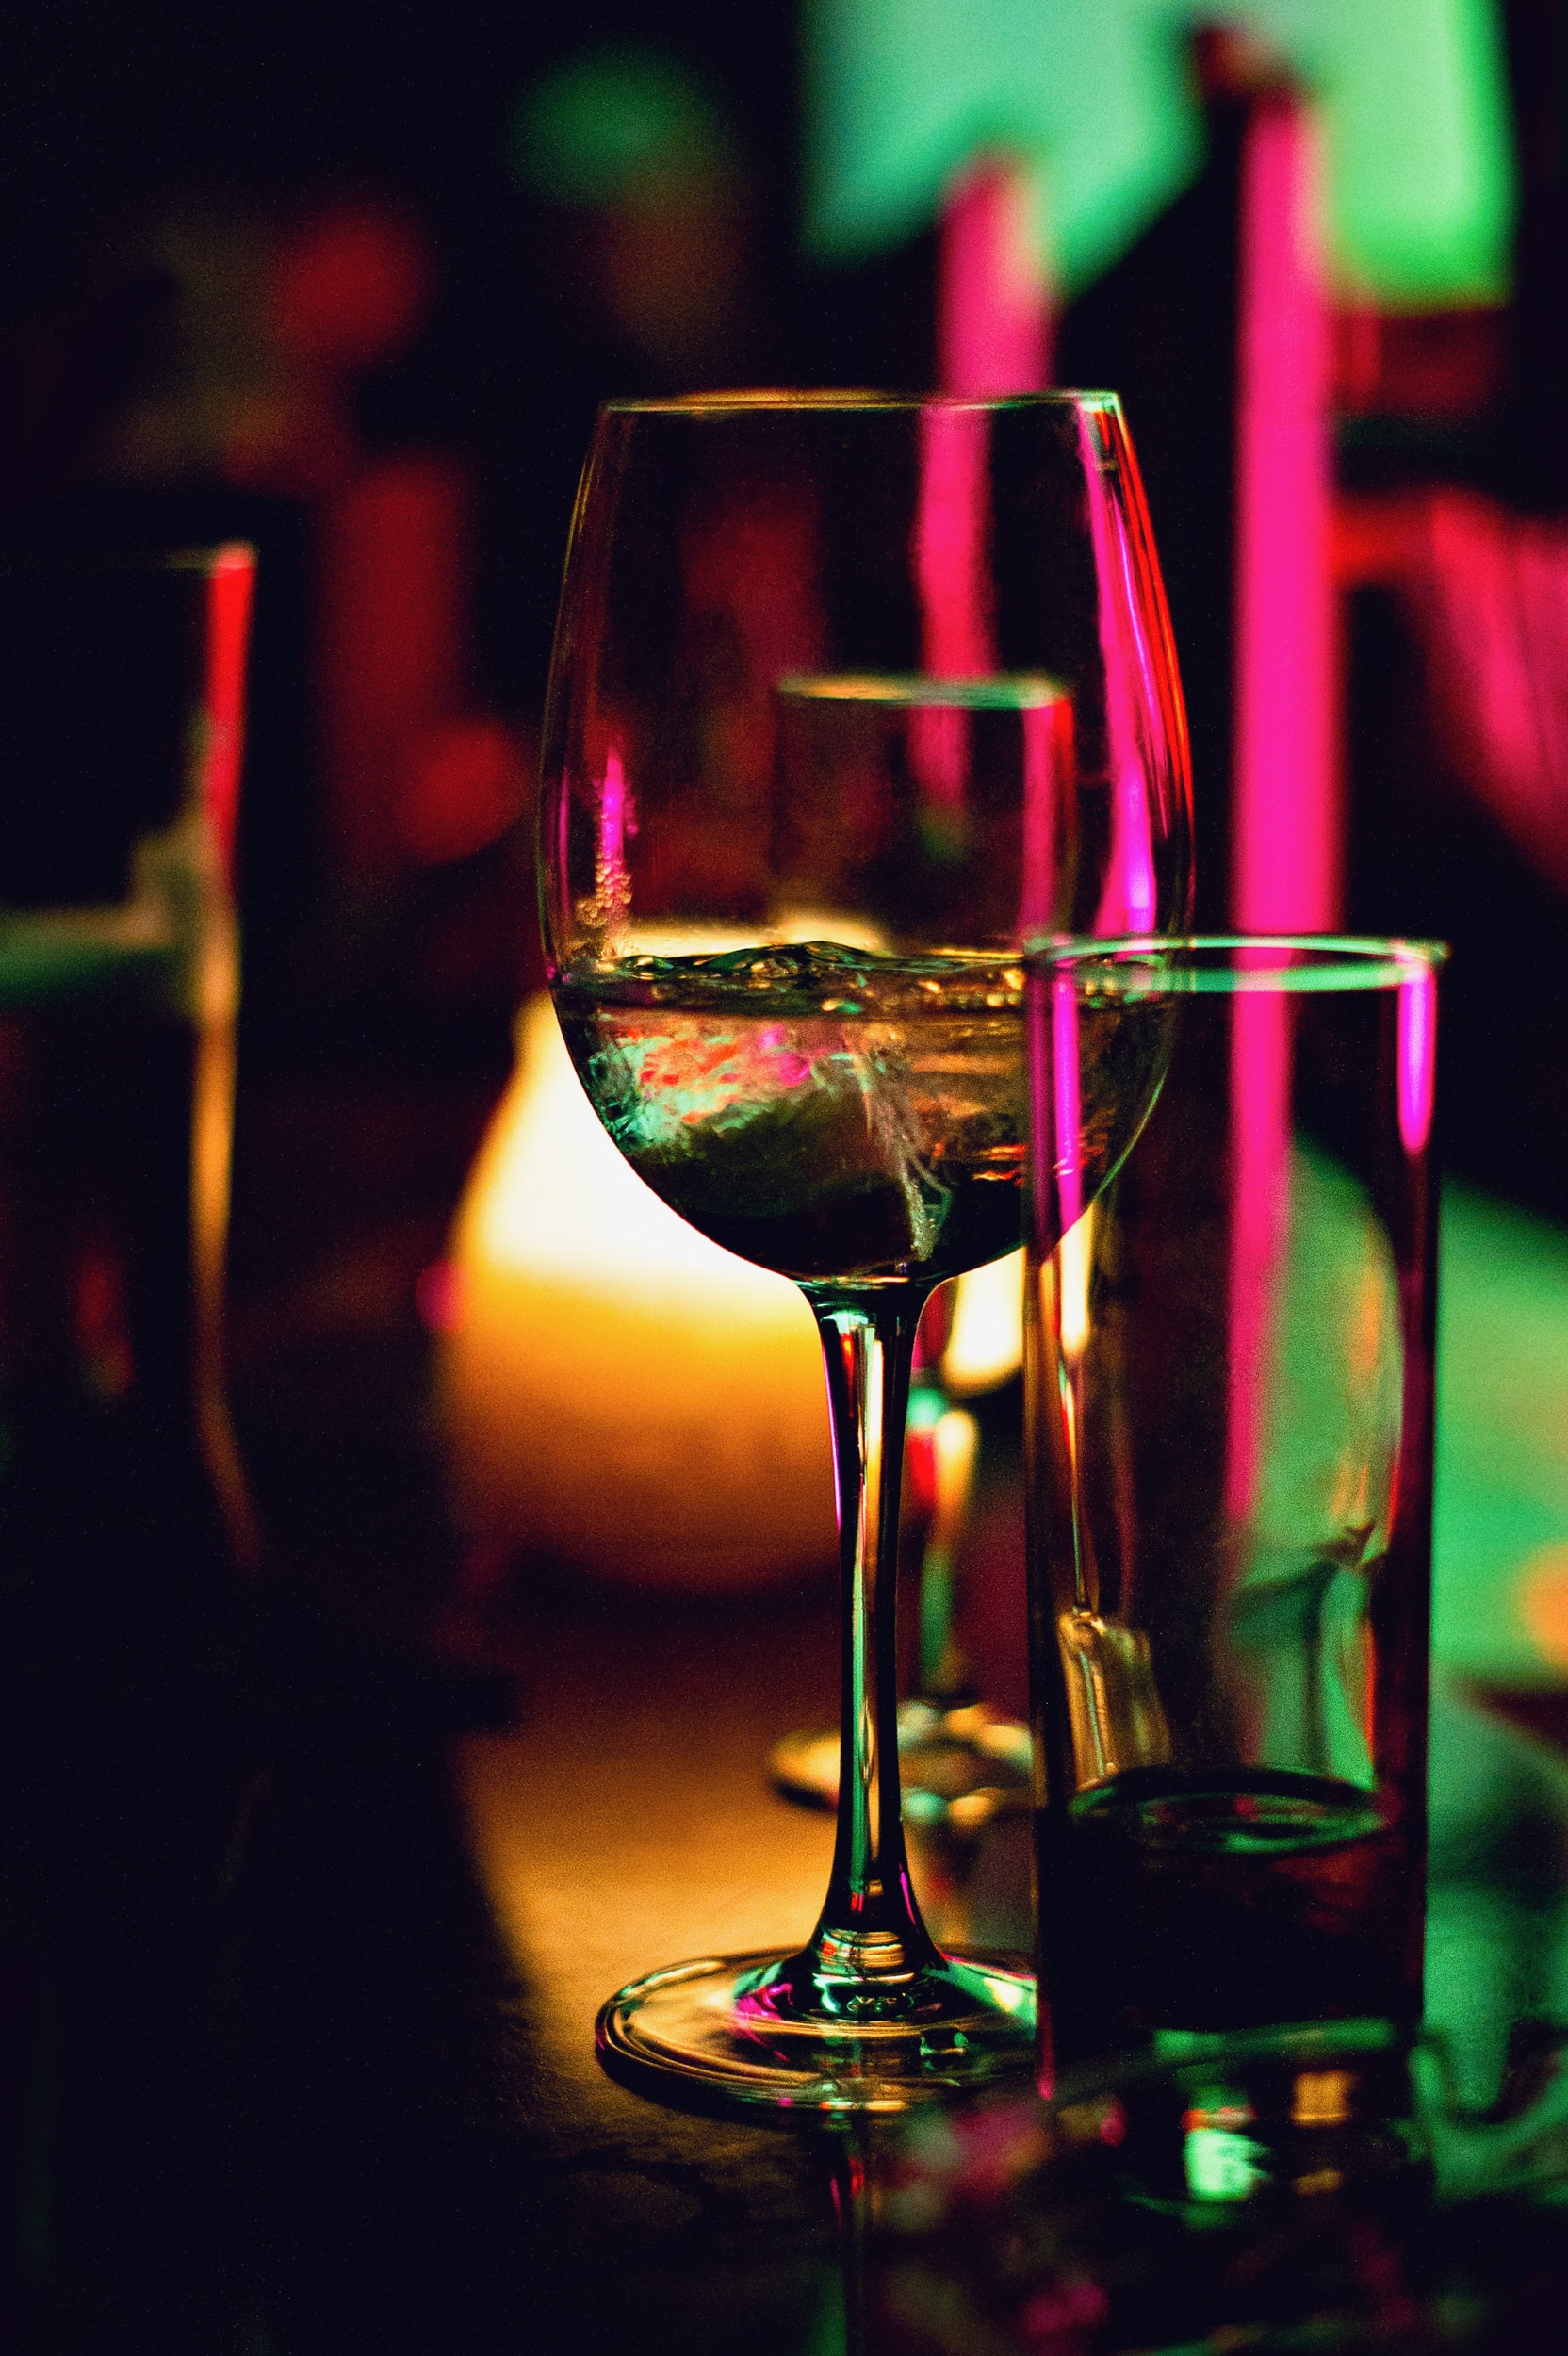 The macro view of wine glasses with alcoholic wine it them in Luxembourg City